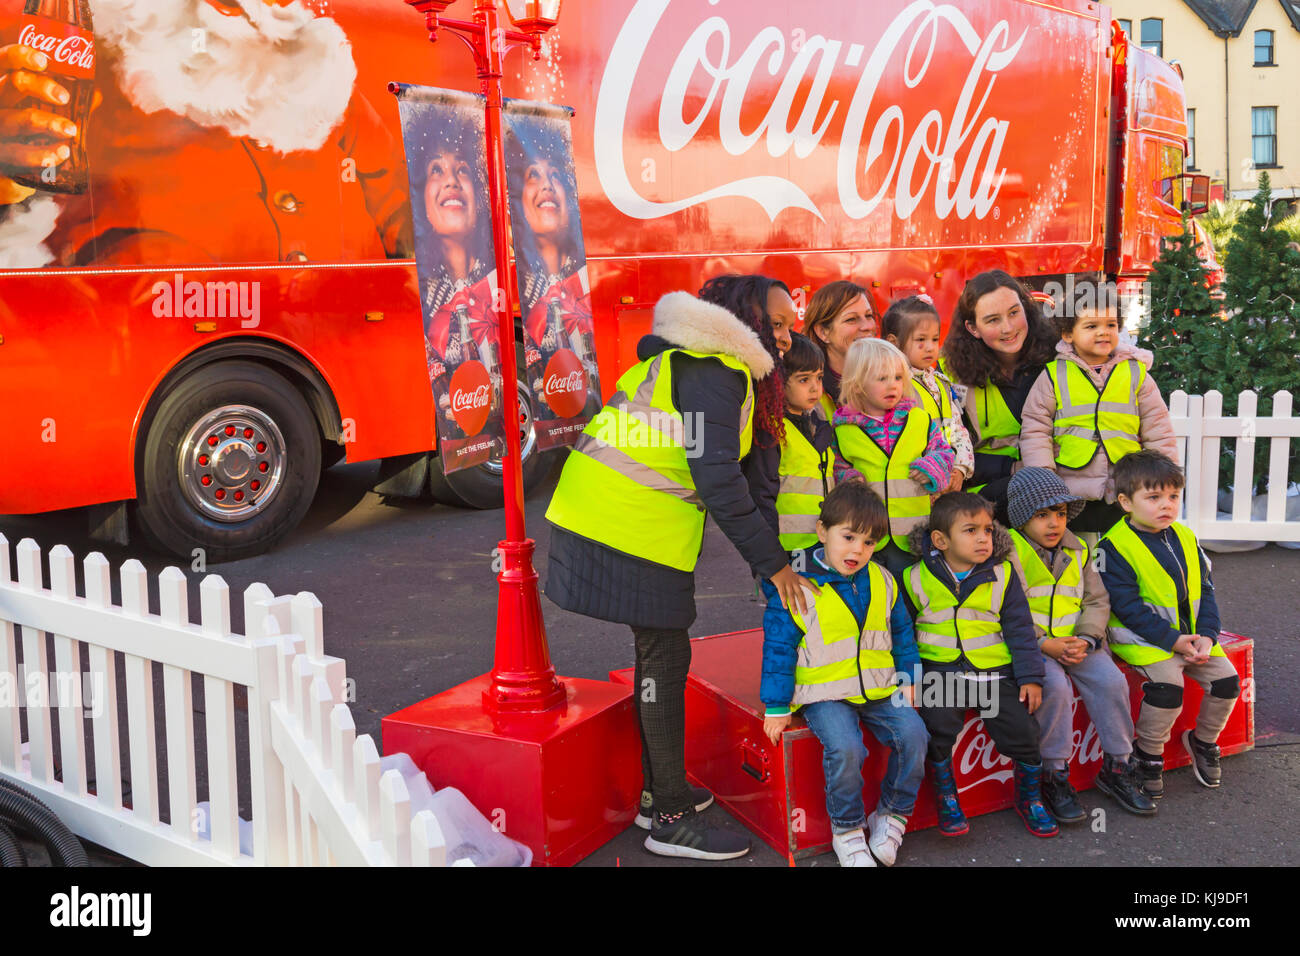 Bournemouth, Dorset, UK. 23rd Nov, 2017. The Christmas Coca Cola truck arrives at the Triangle in Bournemouth, as - Stock Image